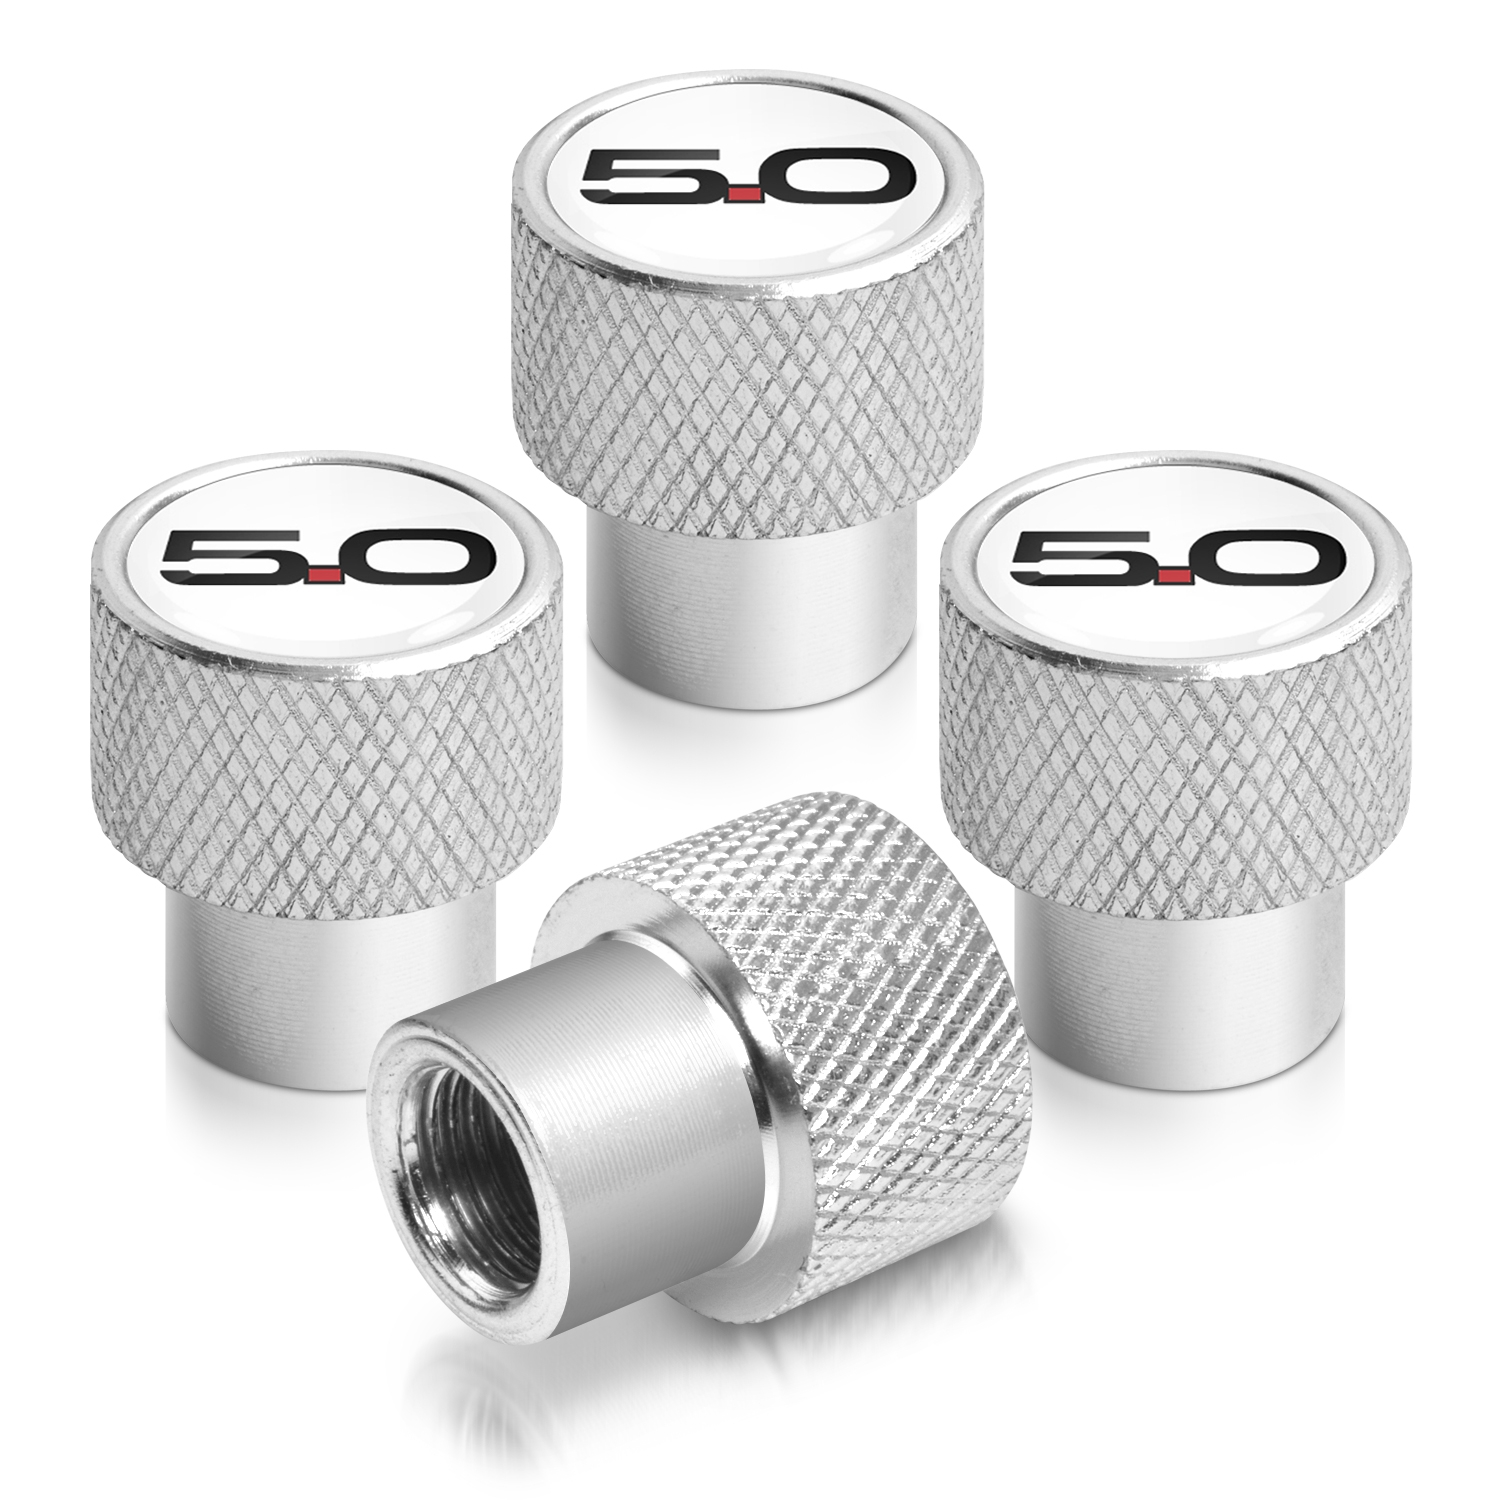 Ford Mustang 5.0 in White on Silver Chrome Aluminum Tire Valve Stem Caps